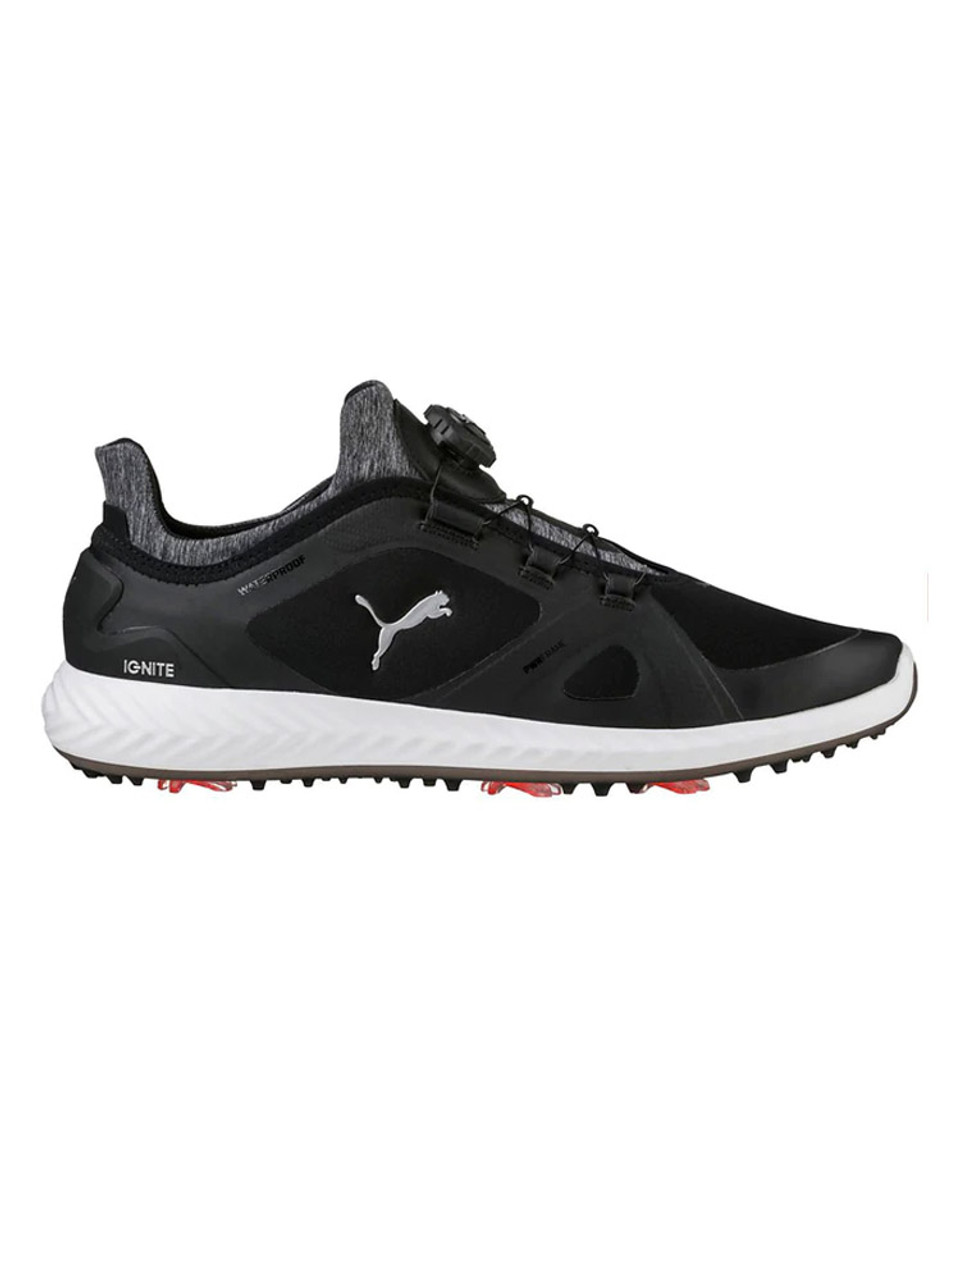 af538c0c0853e Puma Ignite PWRadapt DISC Shoes - Black/White